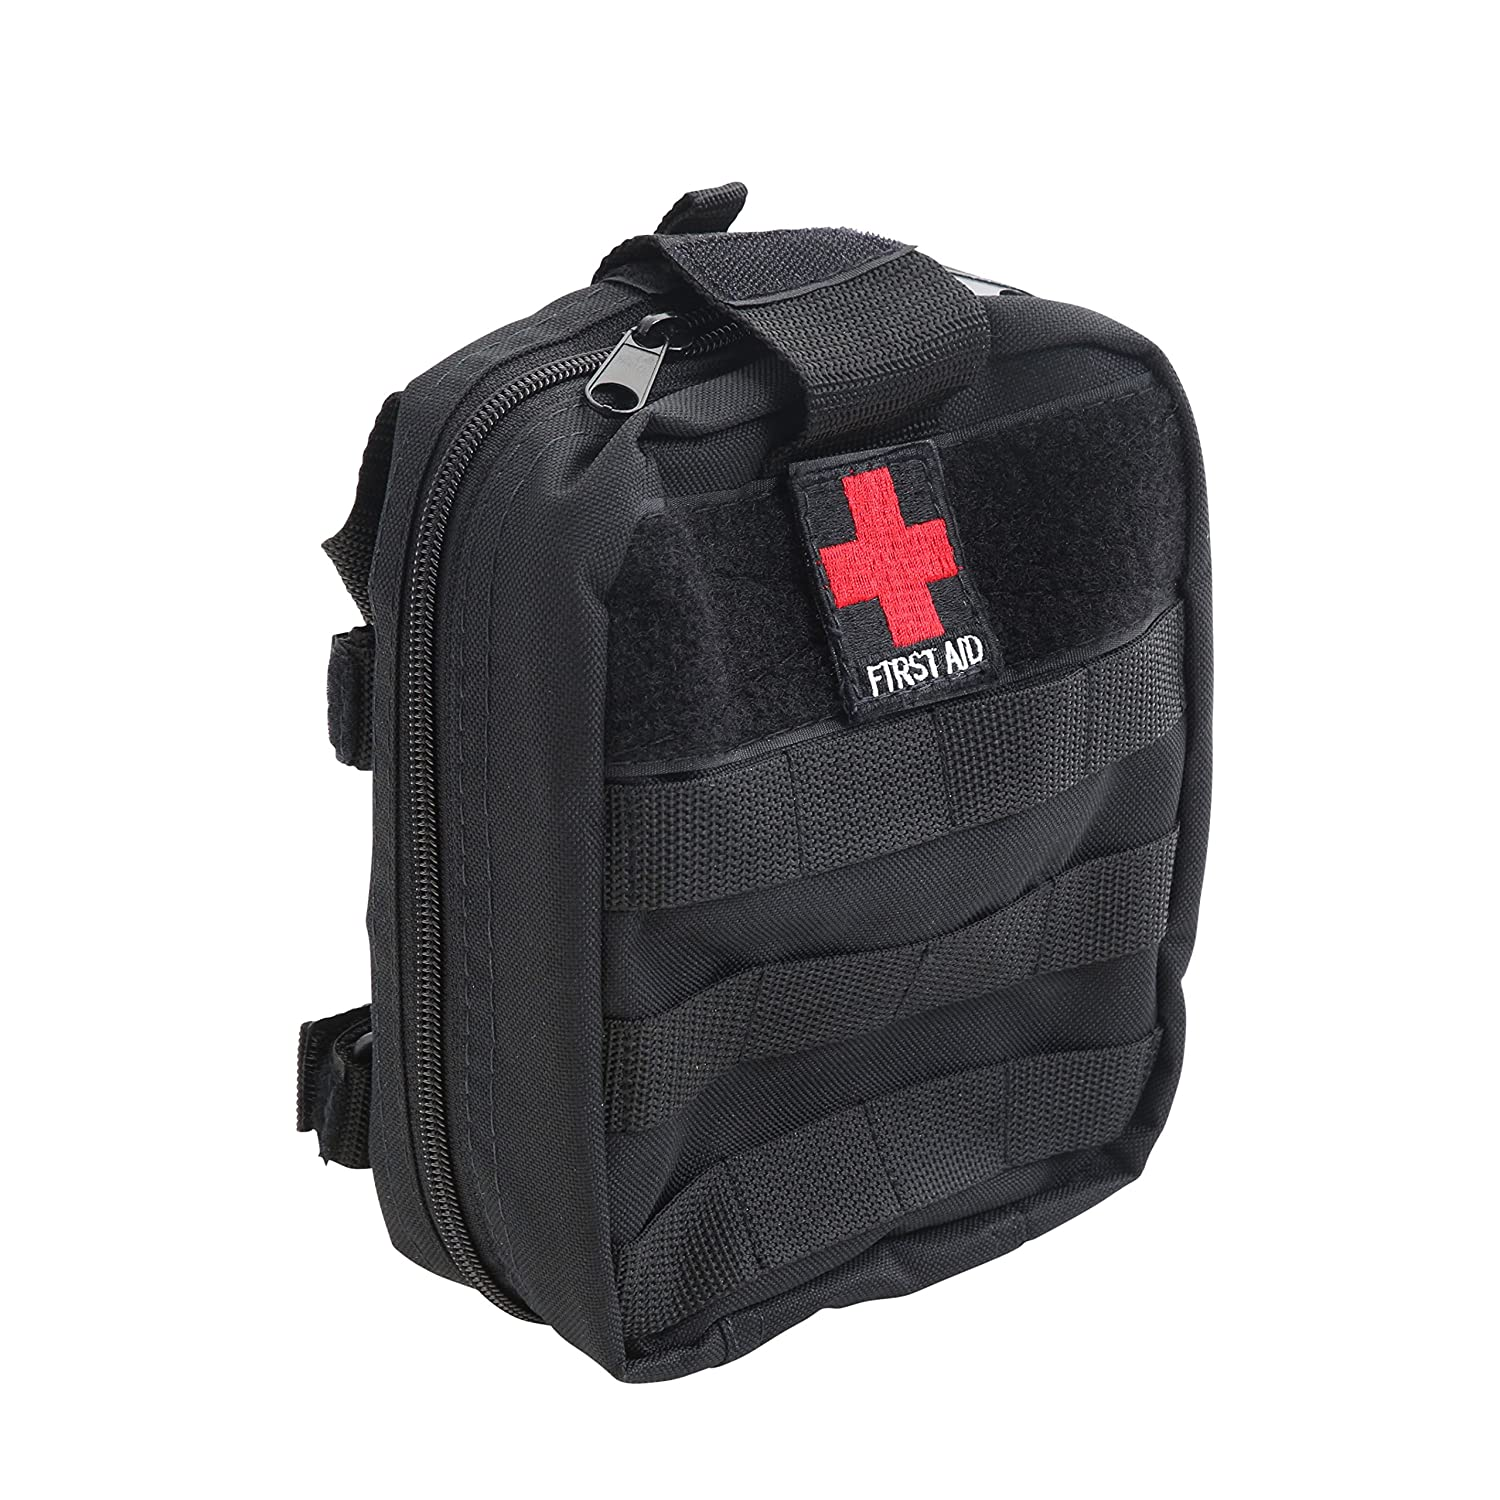 Smittybilt 769541 First Aid Storage Bag